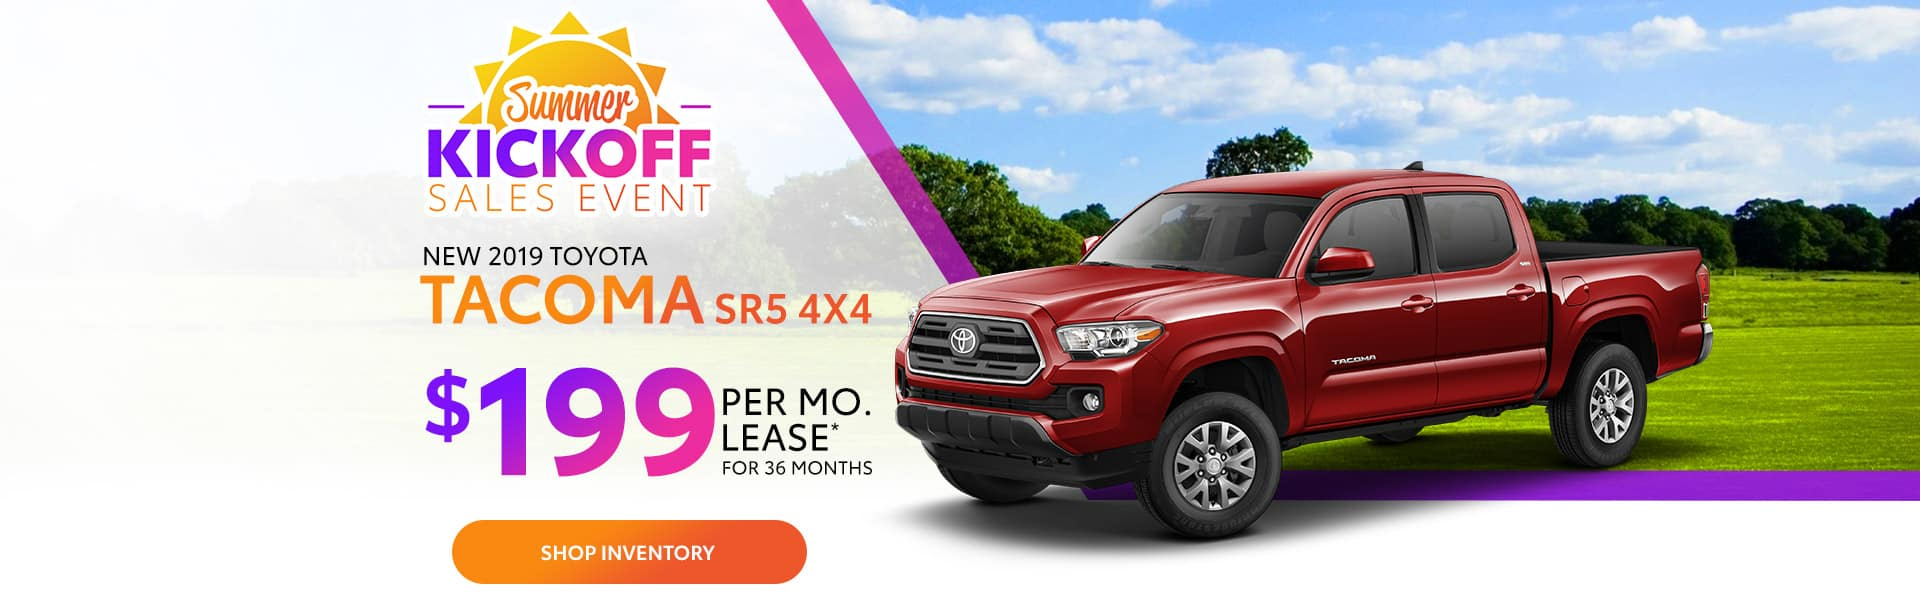 Best Deal on a Toyota Tacoma near Avon, Indiana.